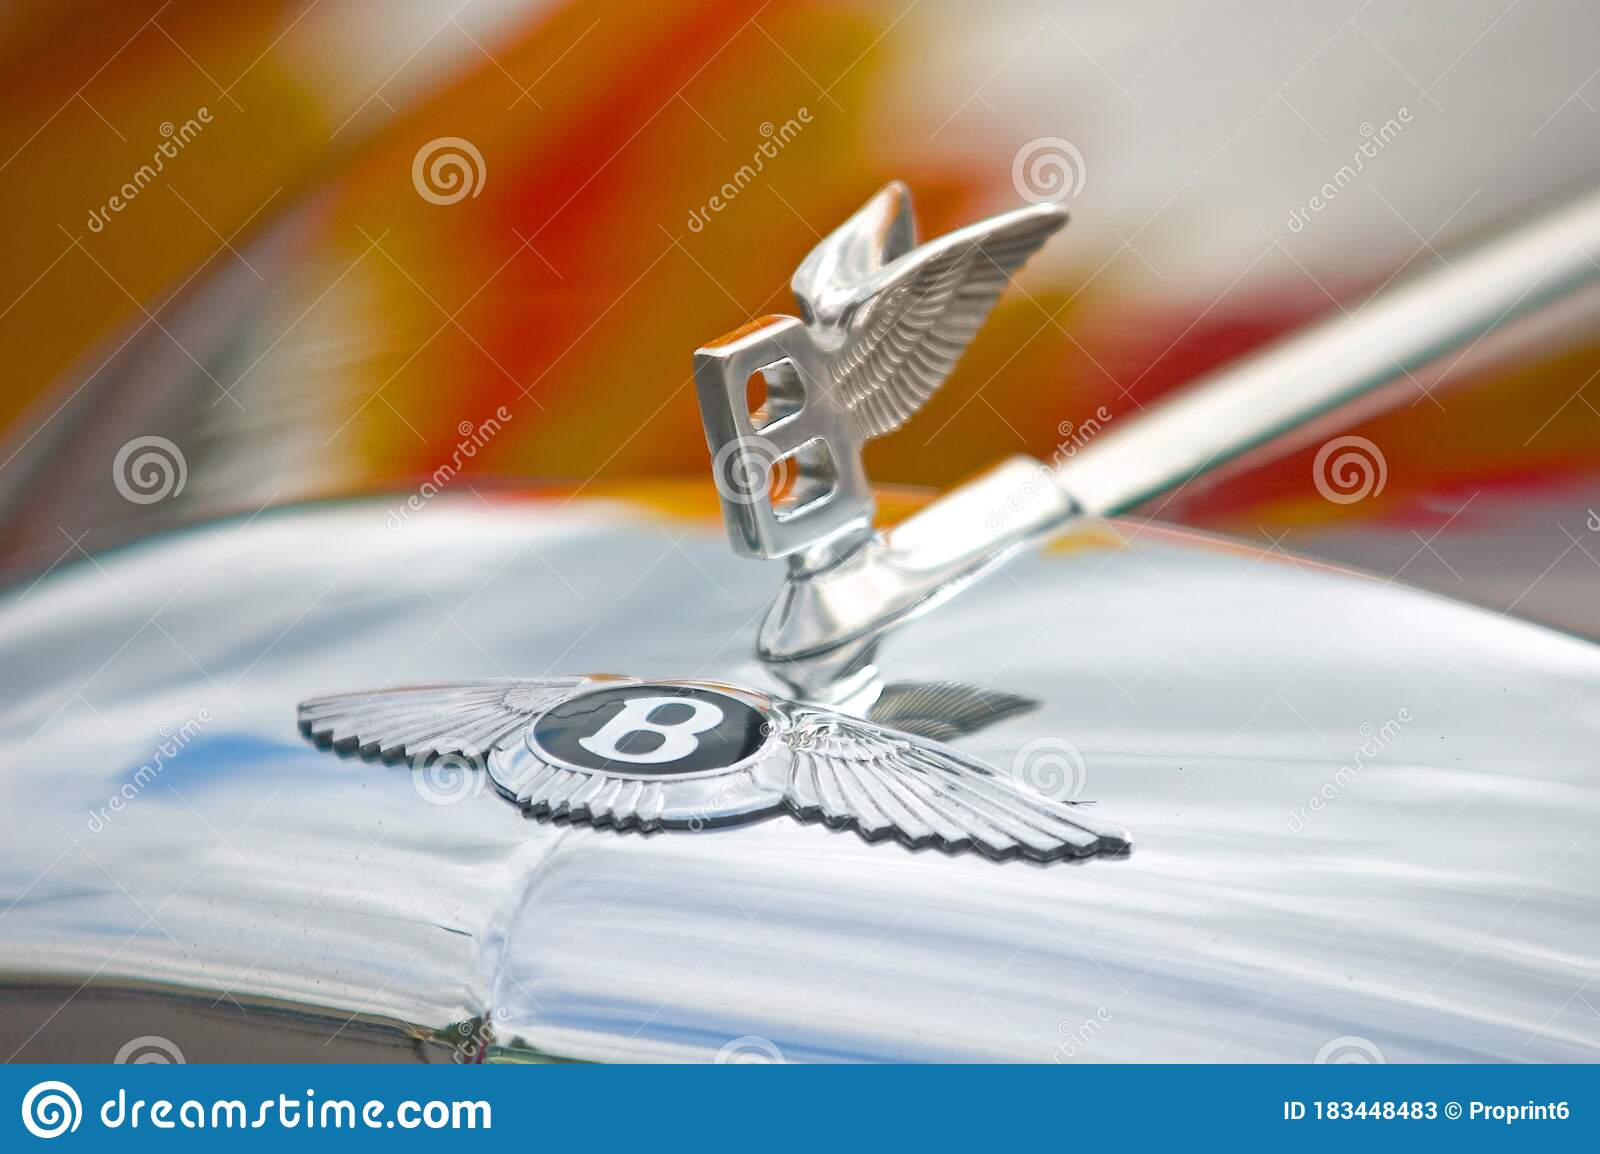 1 302 Vintage Bentley Car Photos Free Royalty Free Stock Photos From Dreamstime